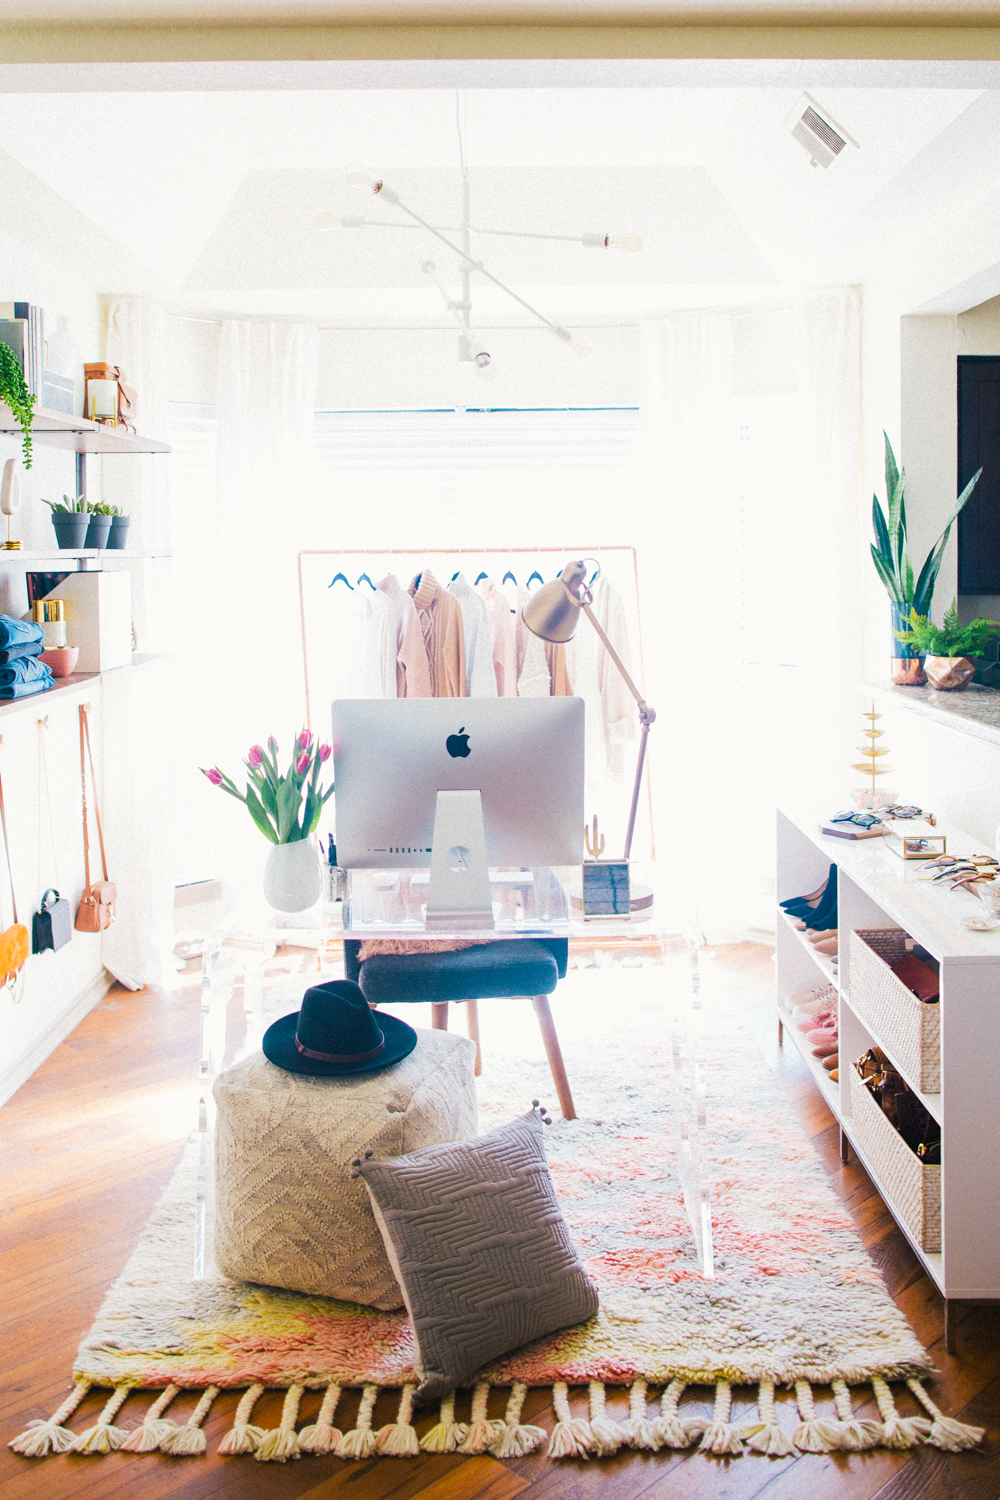 livvyland-blog-olivia-watson-west-elm-home-office-before-after-reveal-pink-grey-cozy-chic-white-airy-girly-austin-texas-fashion-blogger-9